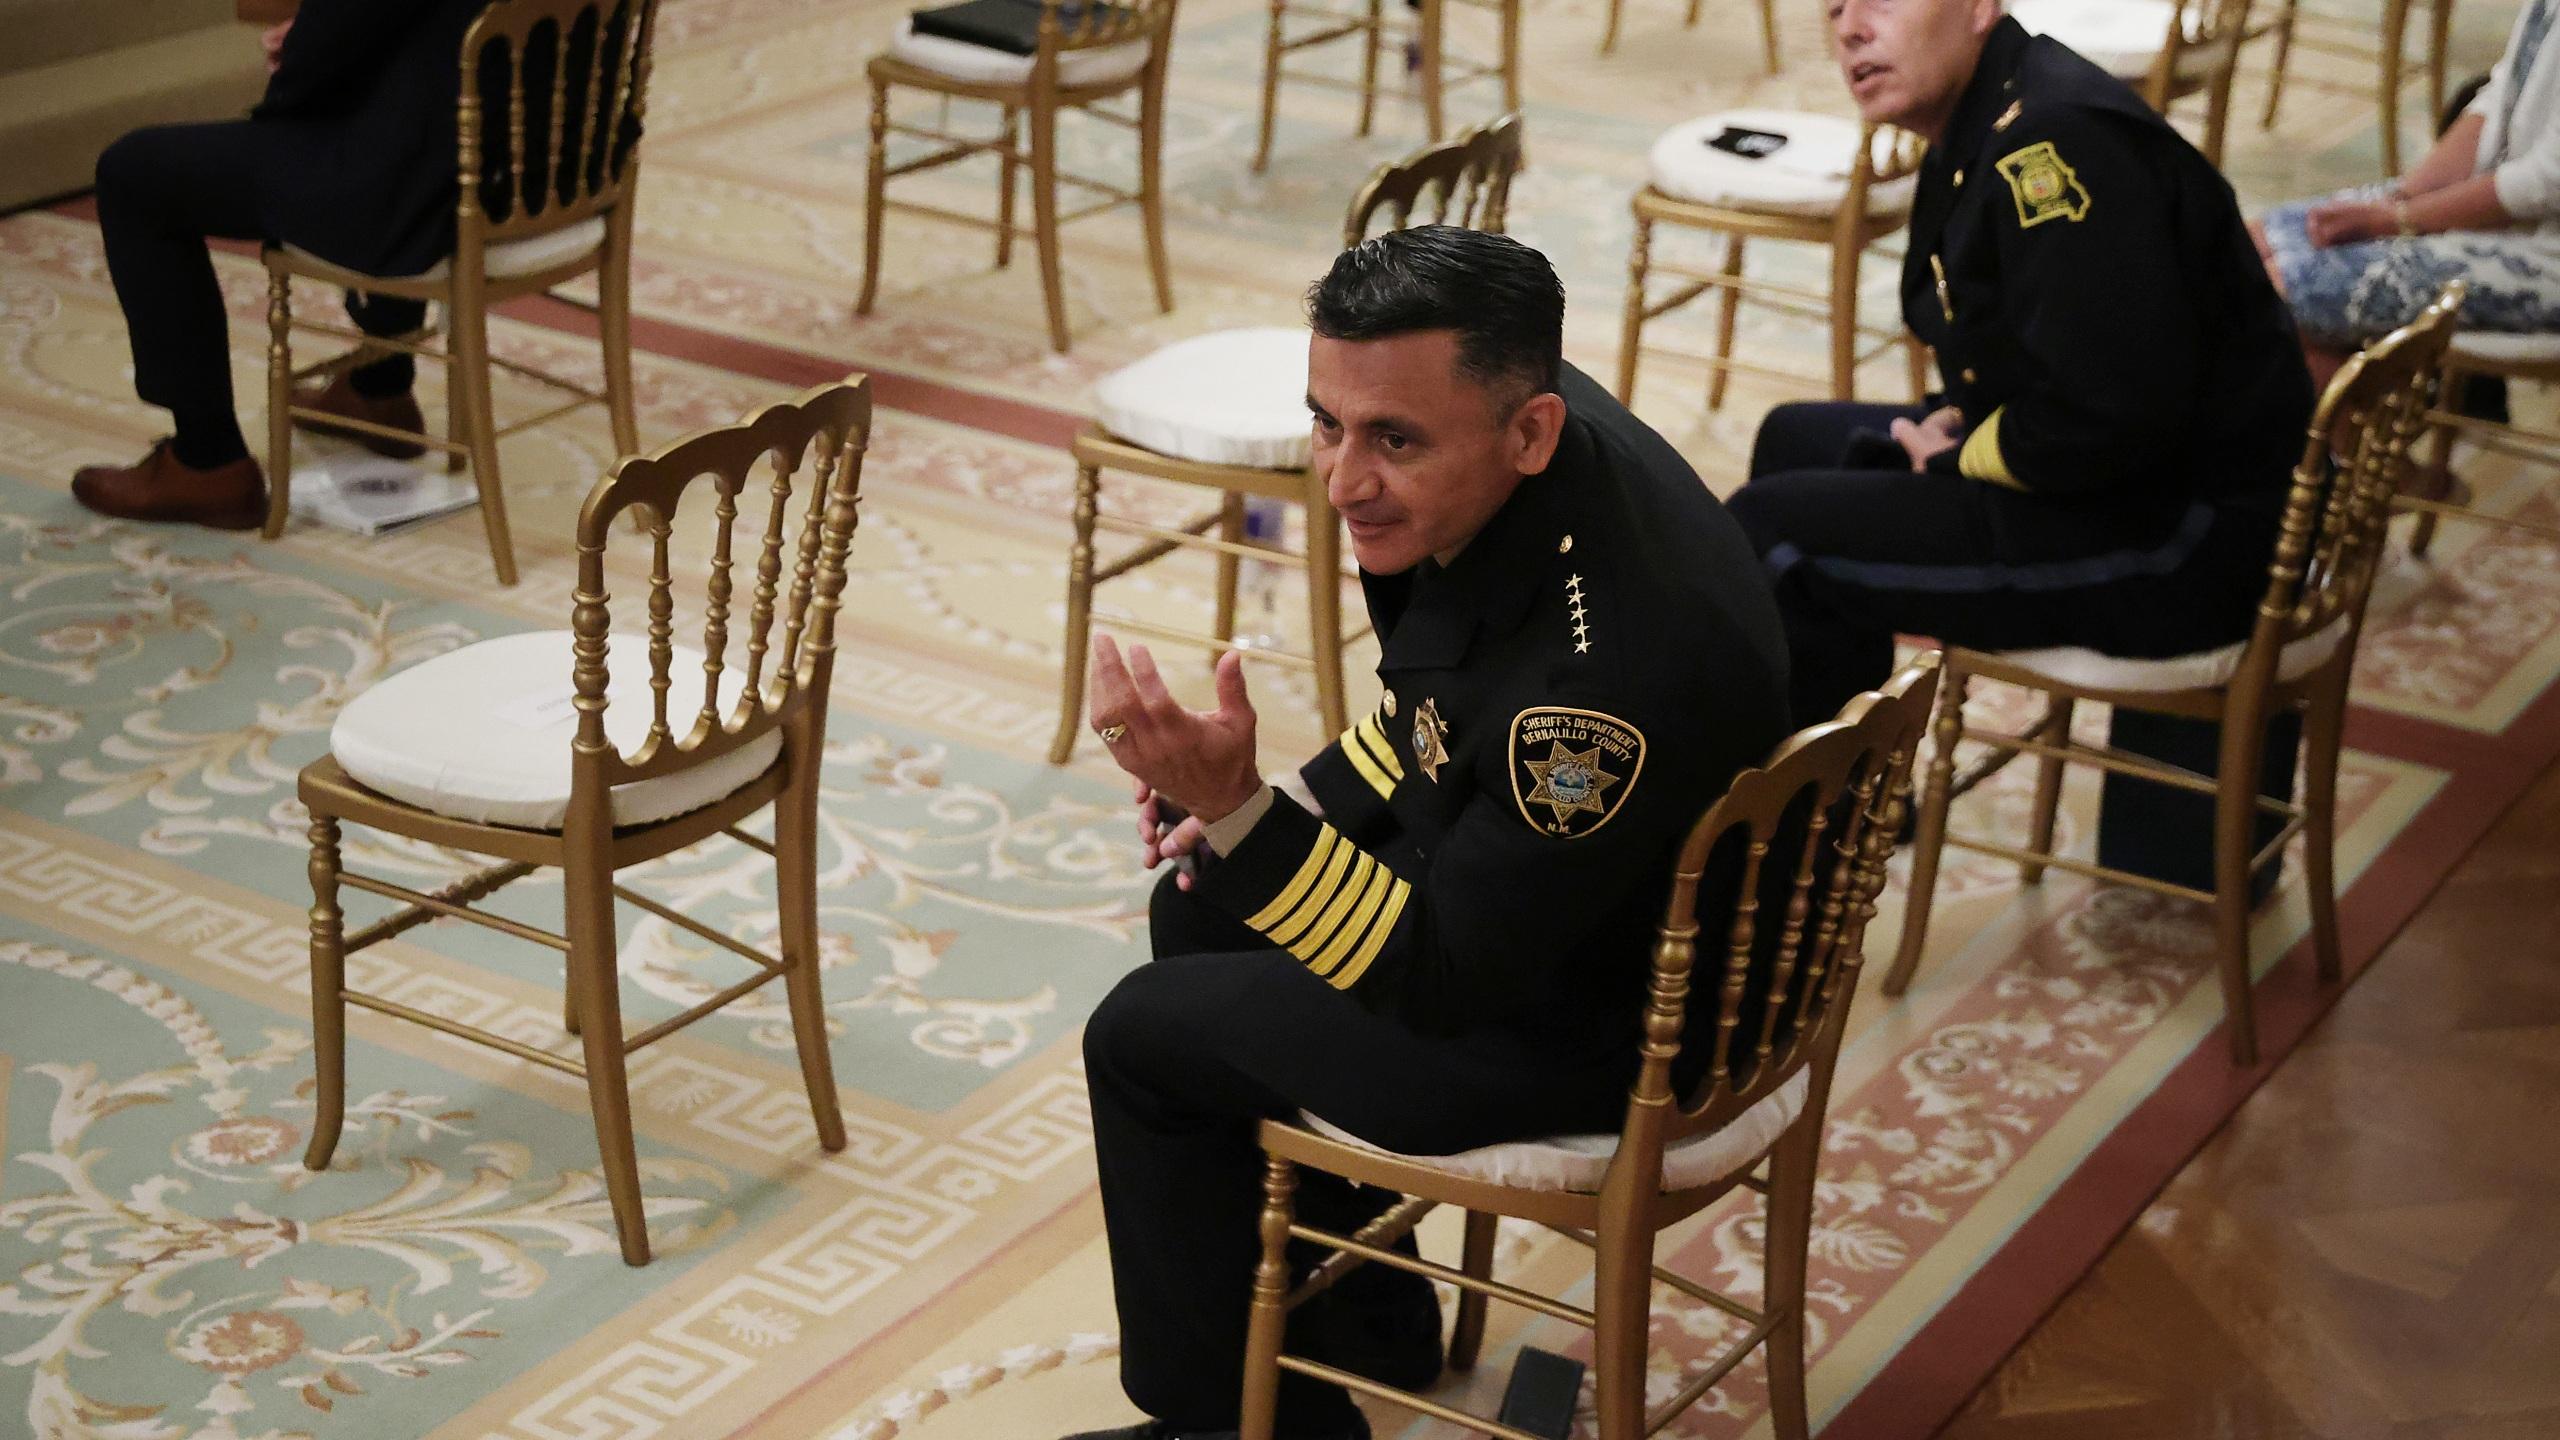 Bernalillo County New Mexico Sheriff Manuel Gonzales III (L) and Kansas City Missouri Police Chief Richard Smith attend an event with U.S. President Donald Trump about Operation Legend' in the East Room of the White House on July 22, 2020. (Chip Somodevilla/Getty Images)